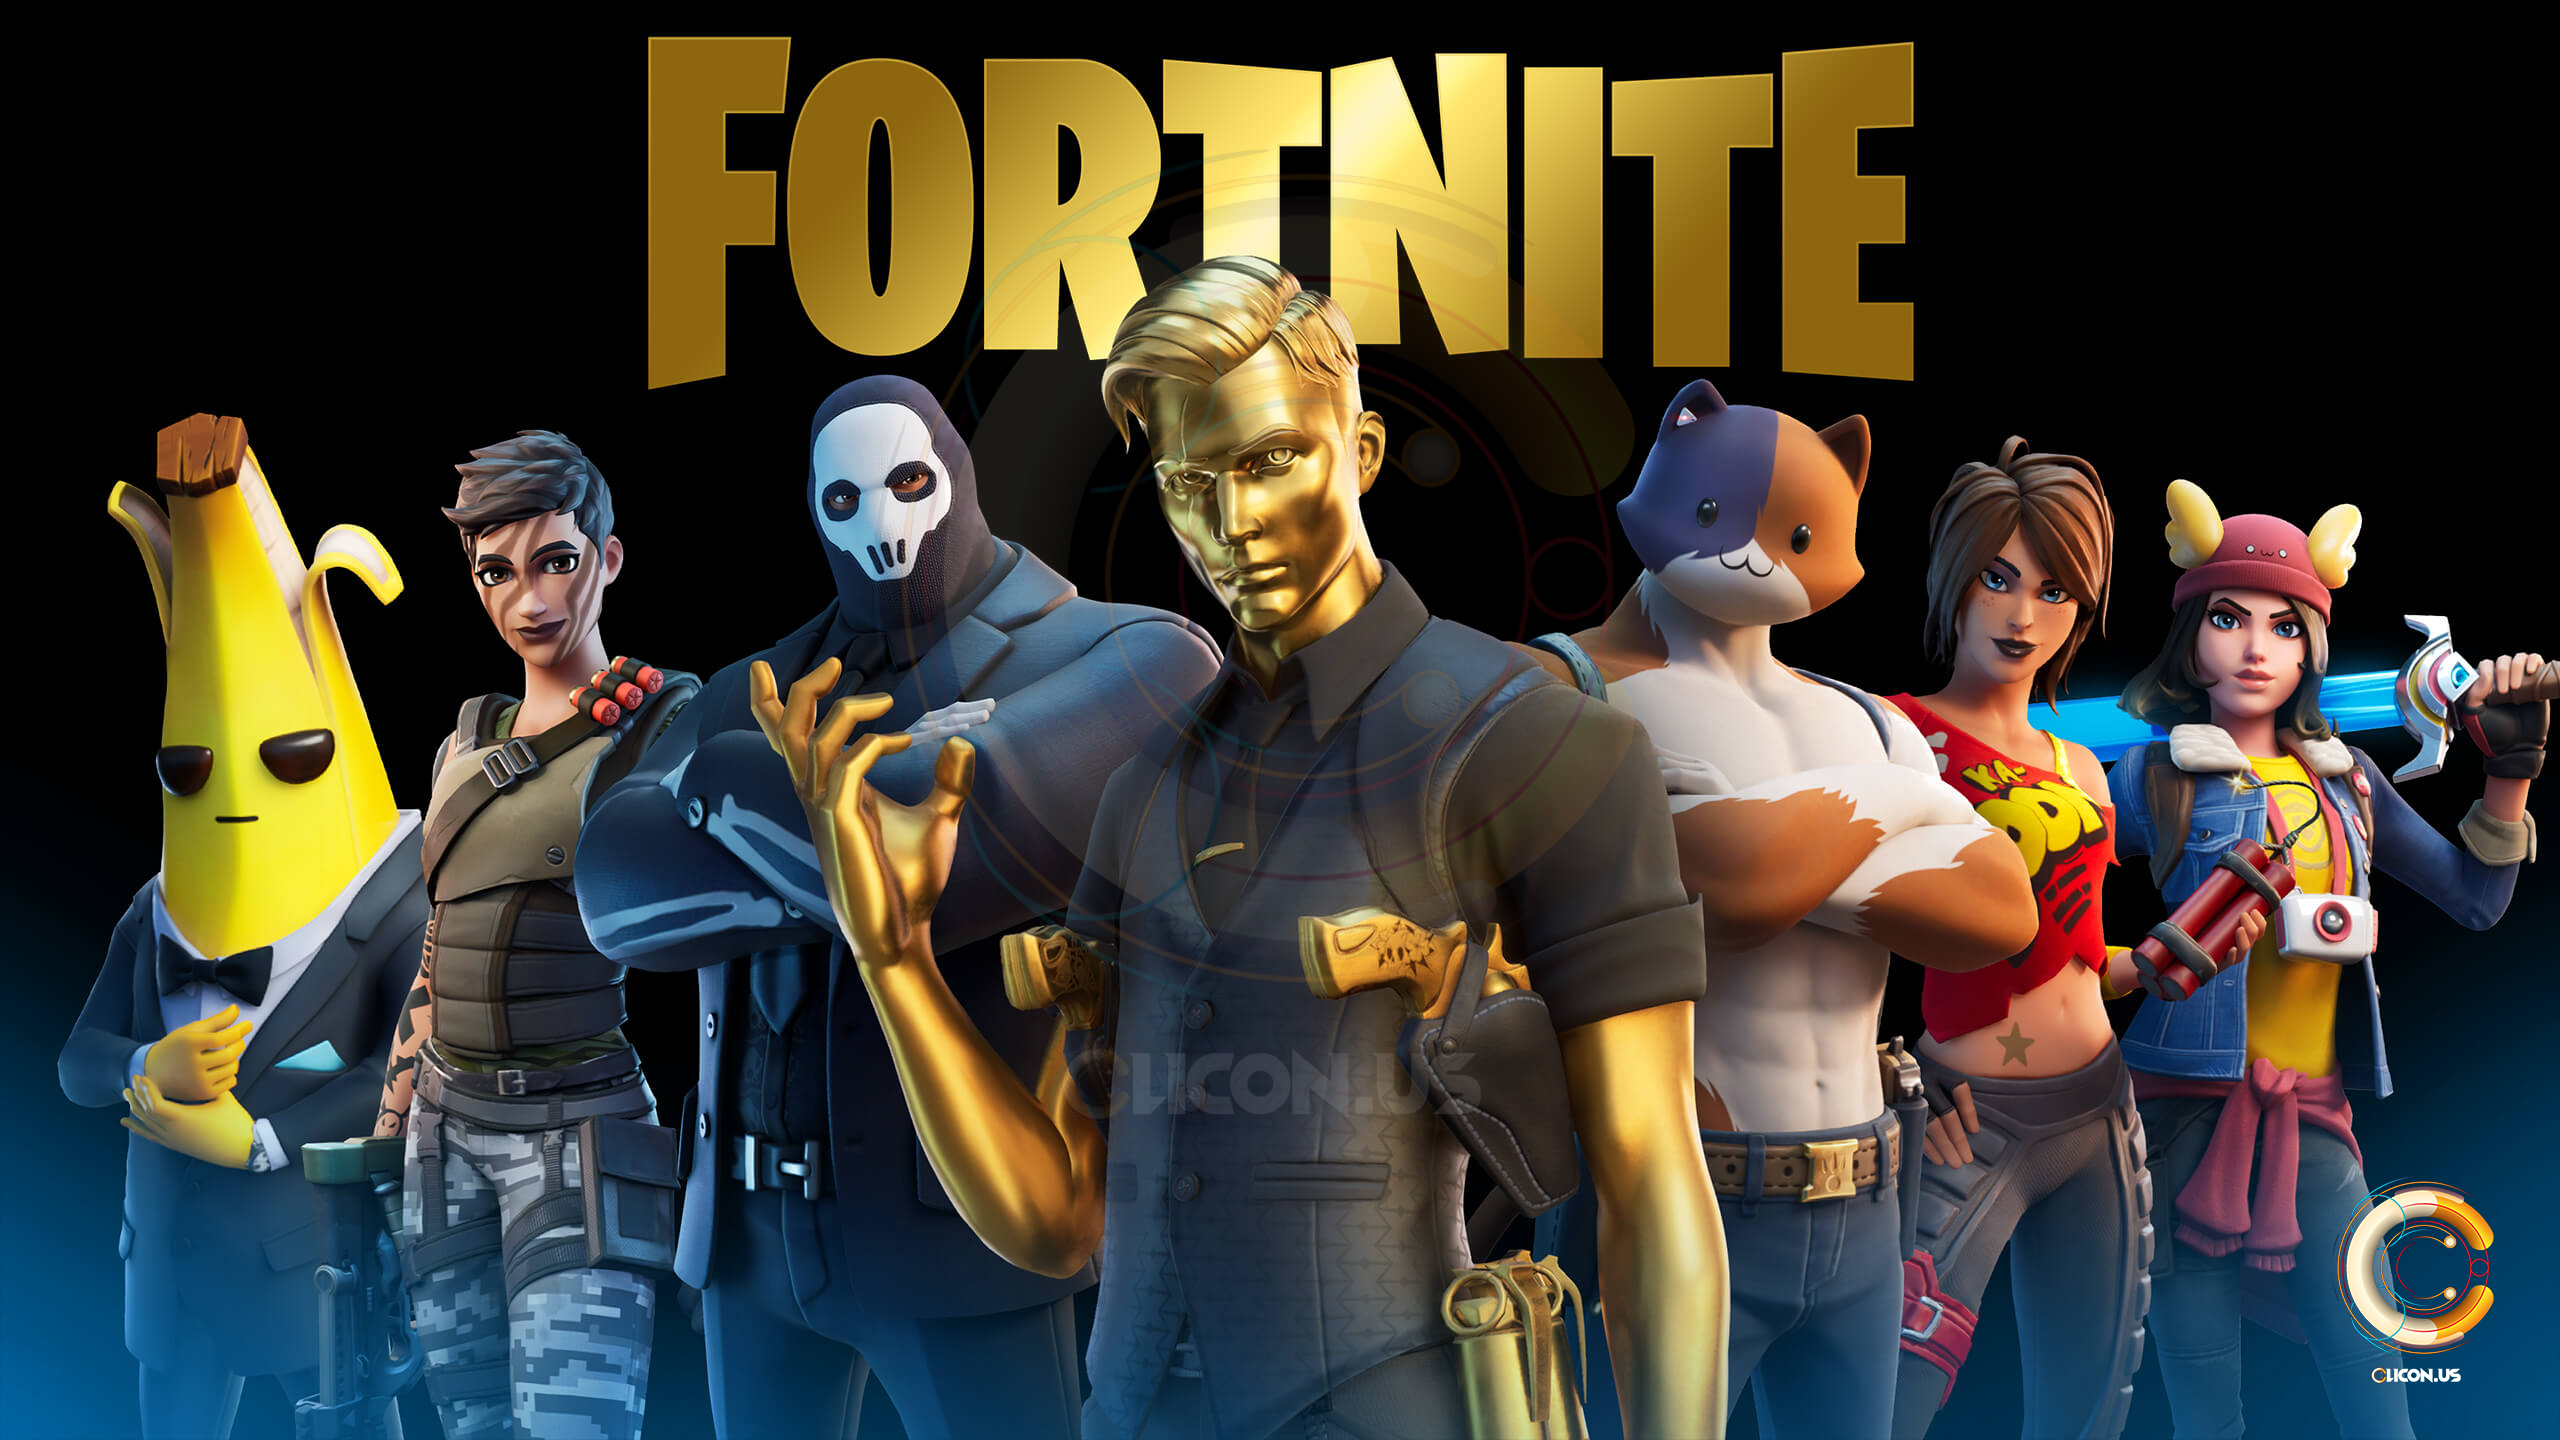 How To Download Fortnite Fortnite Battle Gaming Wallpapers